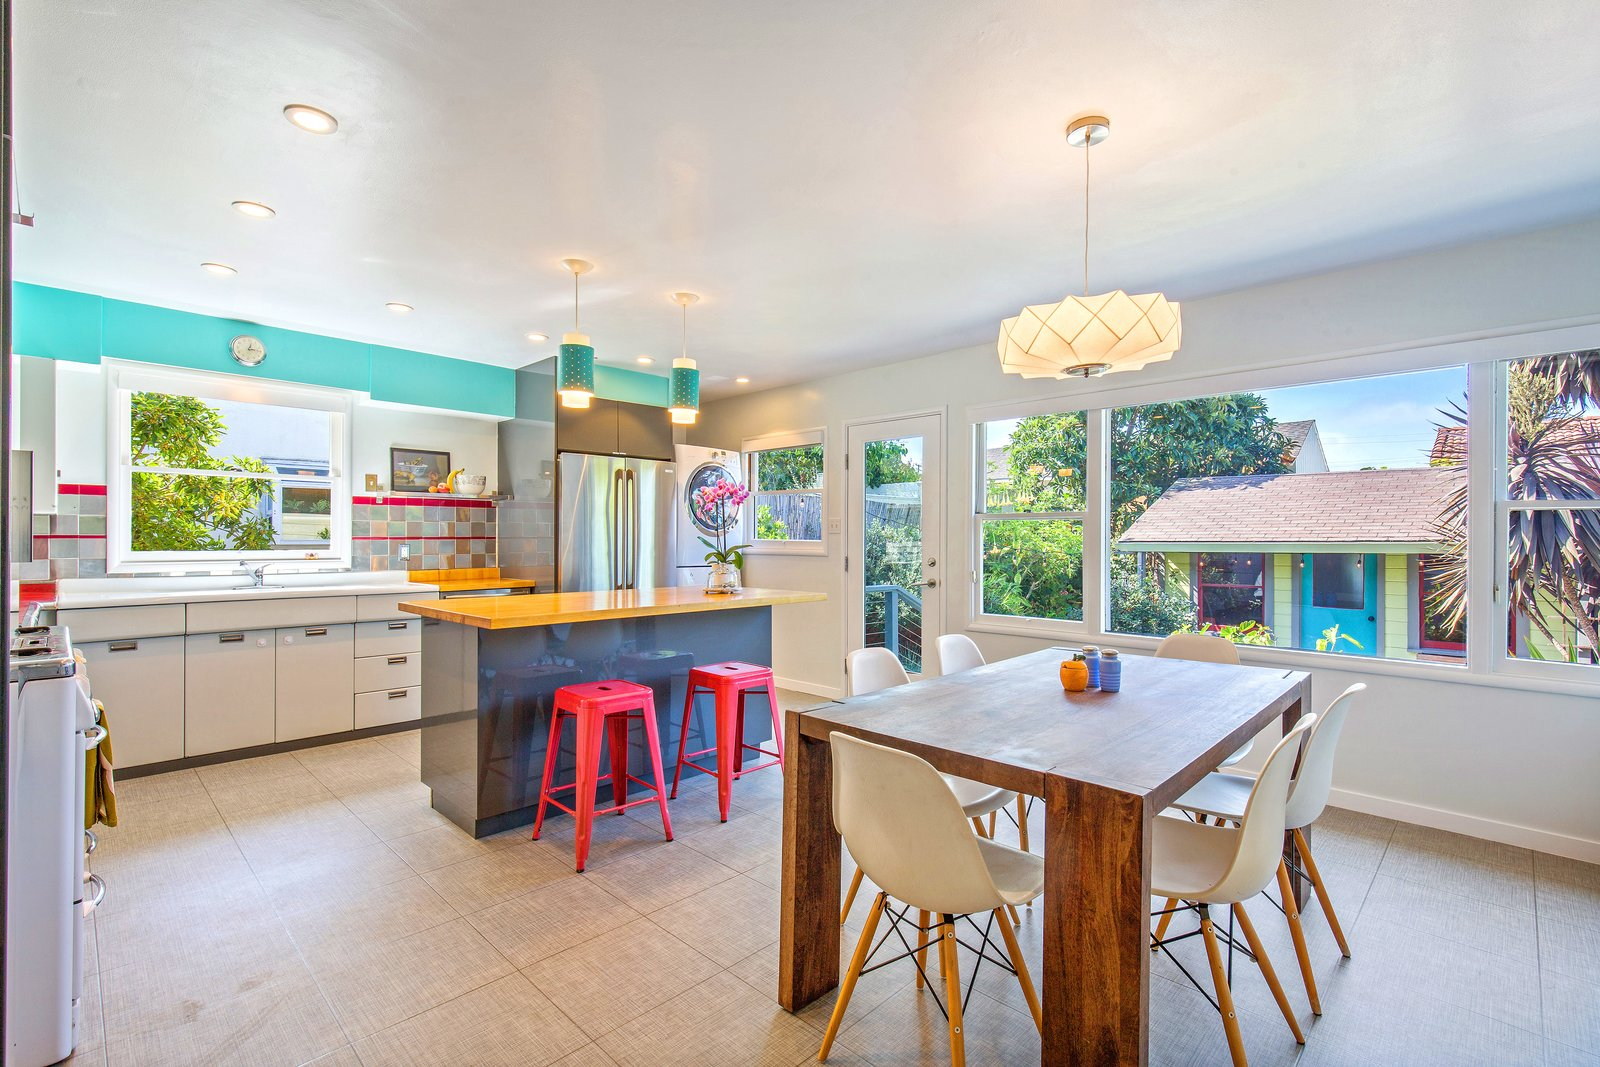 Kitchen, Refrigerator, Ceramic Tile Backsplashe, and Pendant Lighting The kitchen retains its original 1950s cabinetry, oven, and tiles, but has been supplemented with modern appliances and an island, among other features.  Best Photos from A Midcentury Charmer in the Bay Area Is Listed at $749K